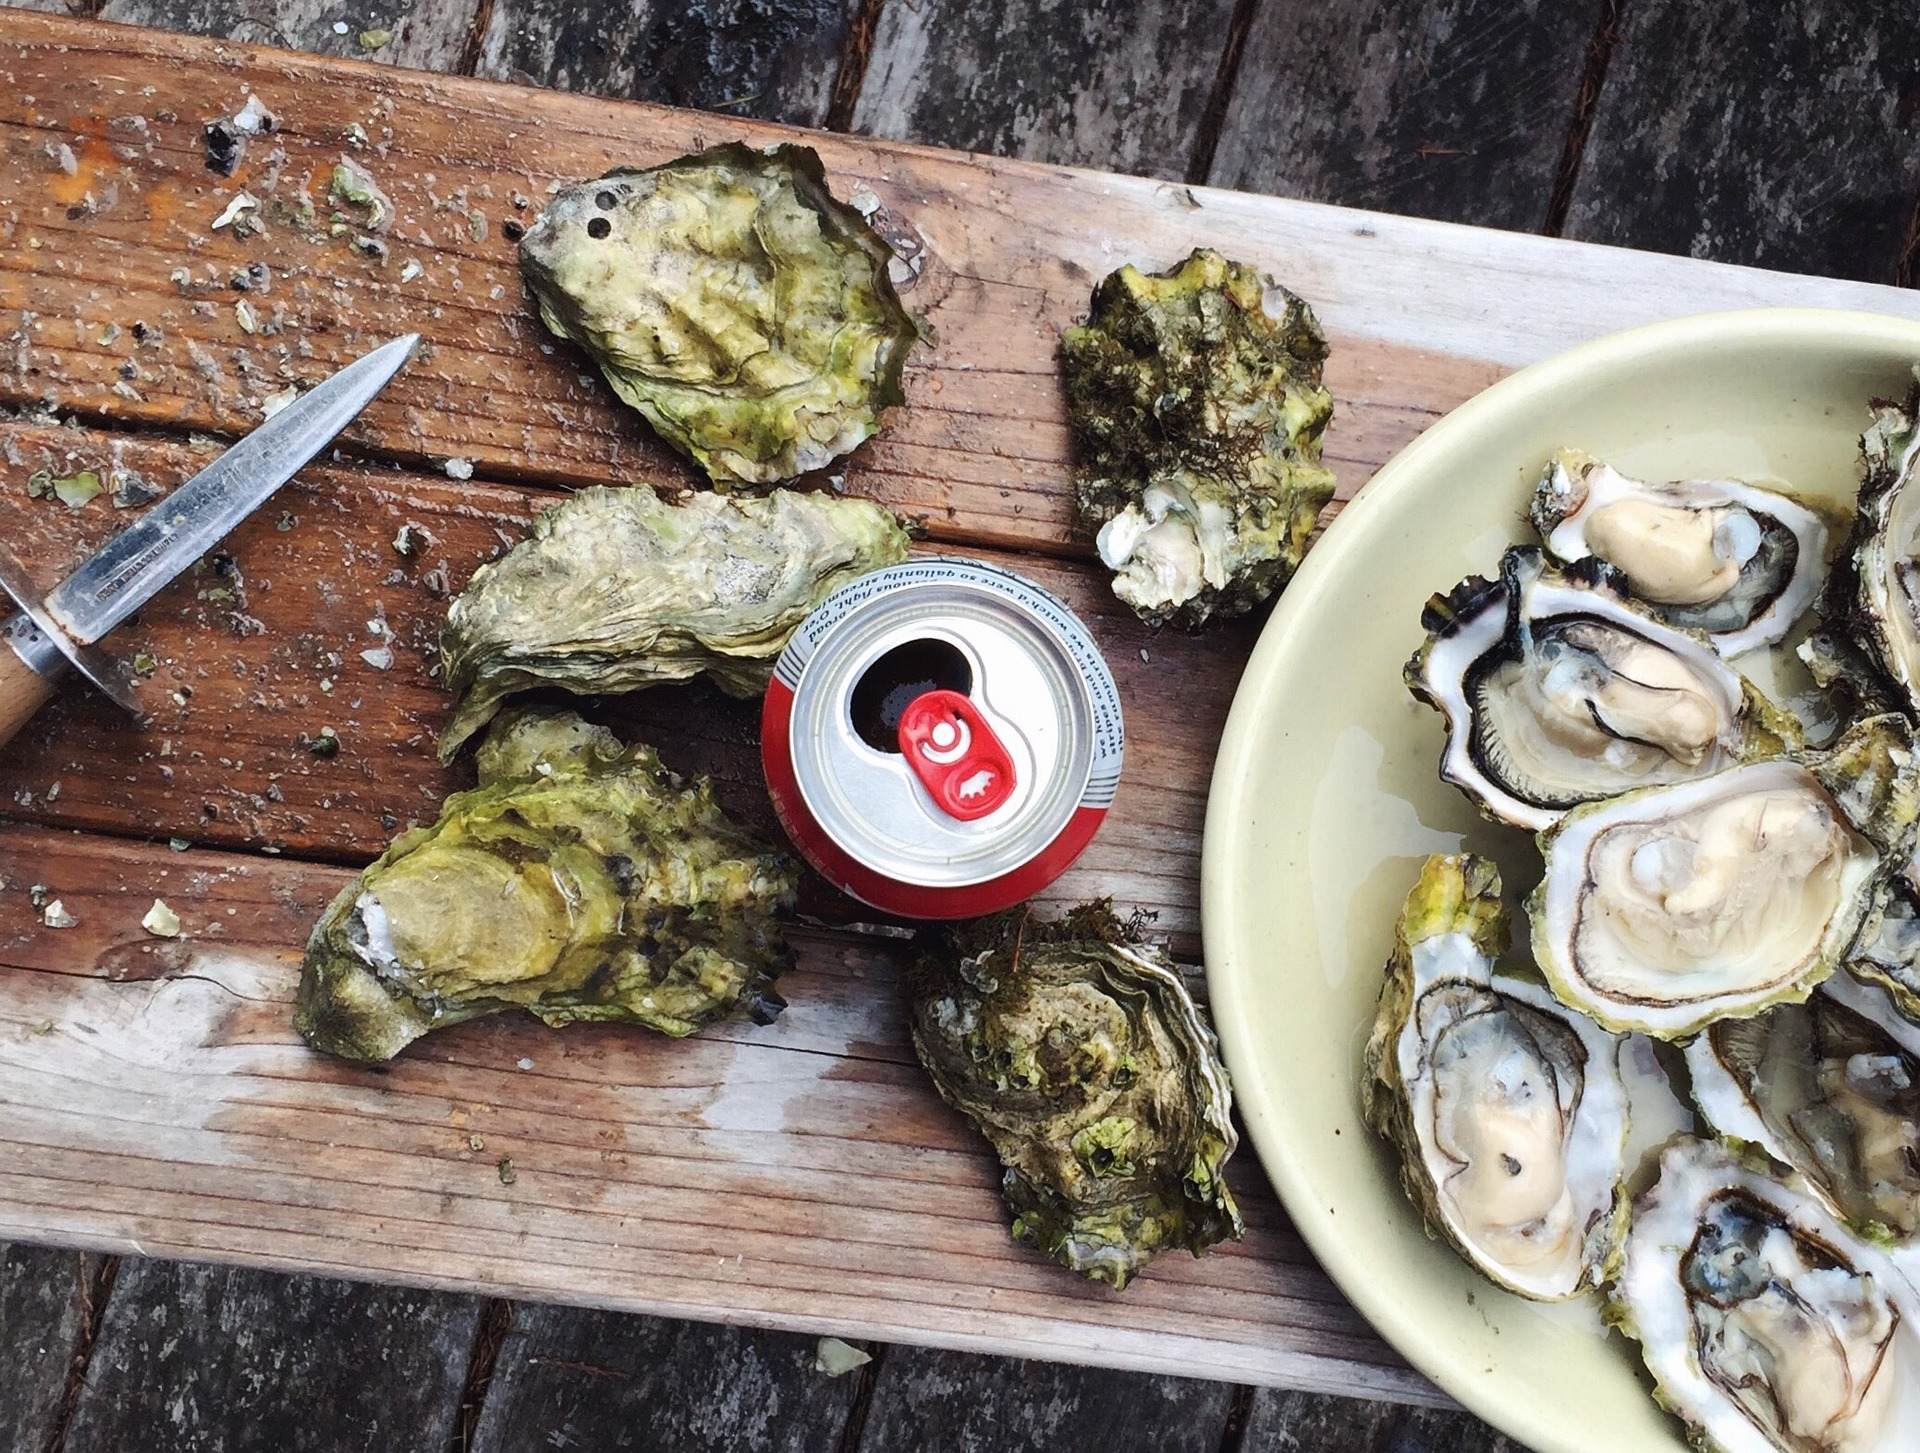 Oyster Party for 10 - at The Water DogBring your friends for a private tasting of 6 premium oysters paired with wine and fries to shareWINNER: Jamie Volosin